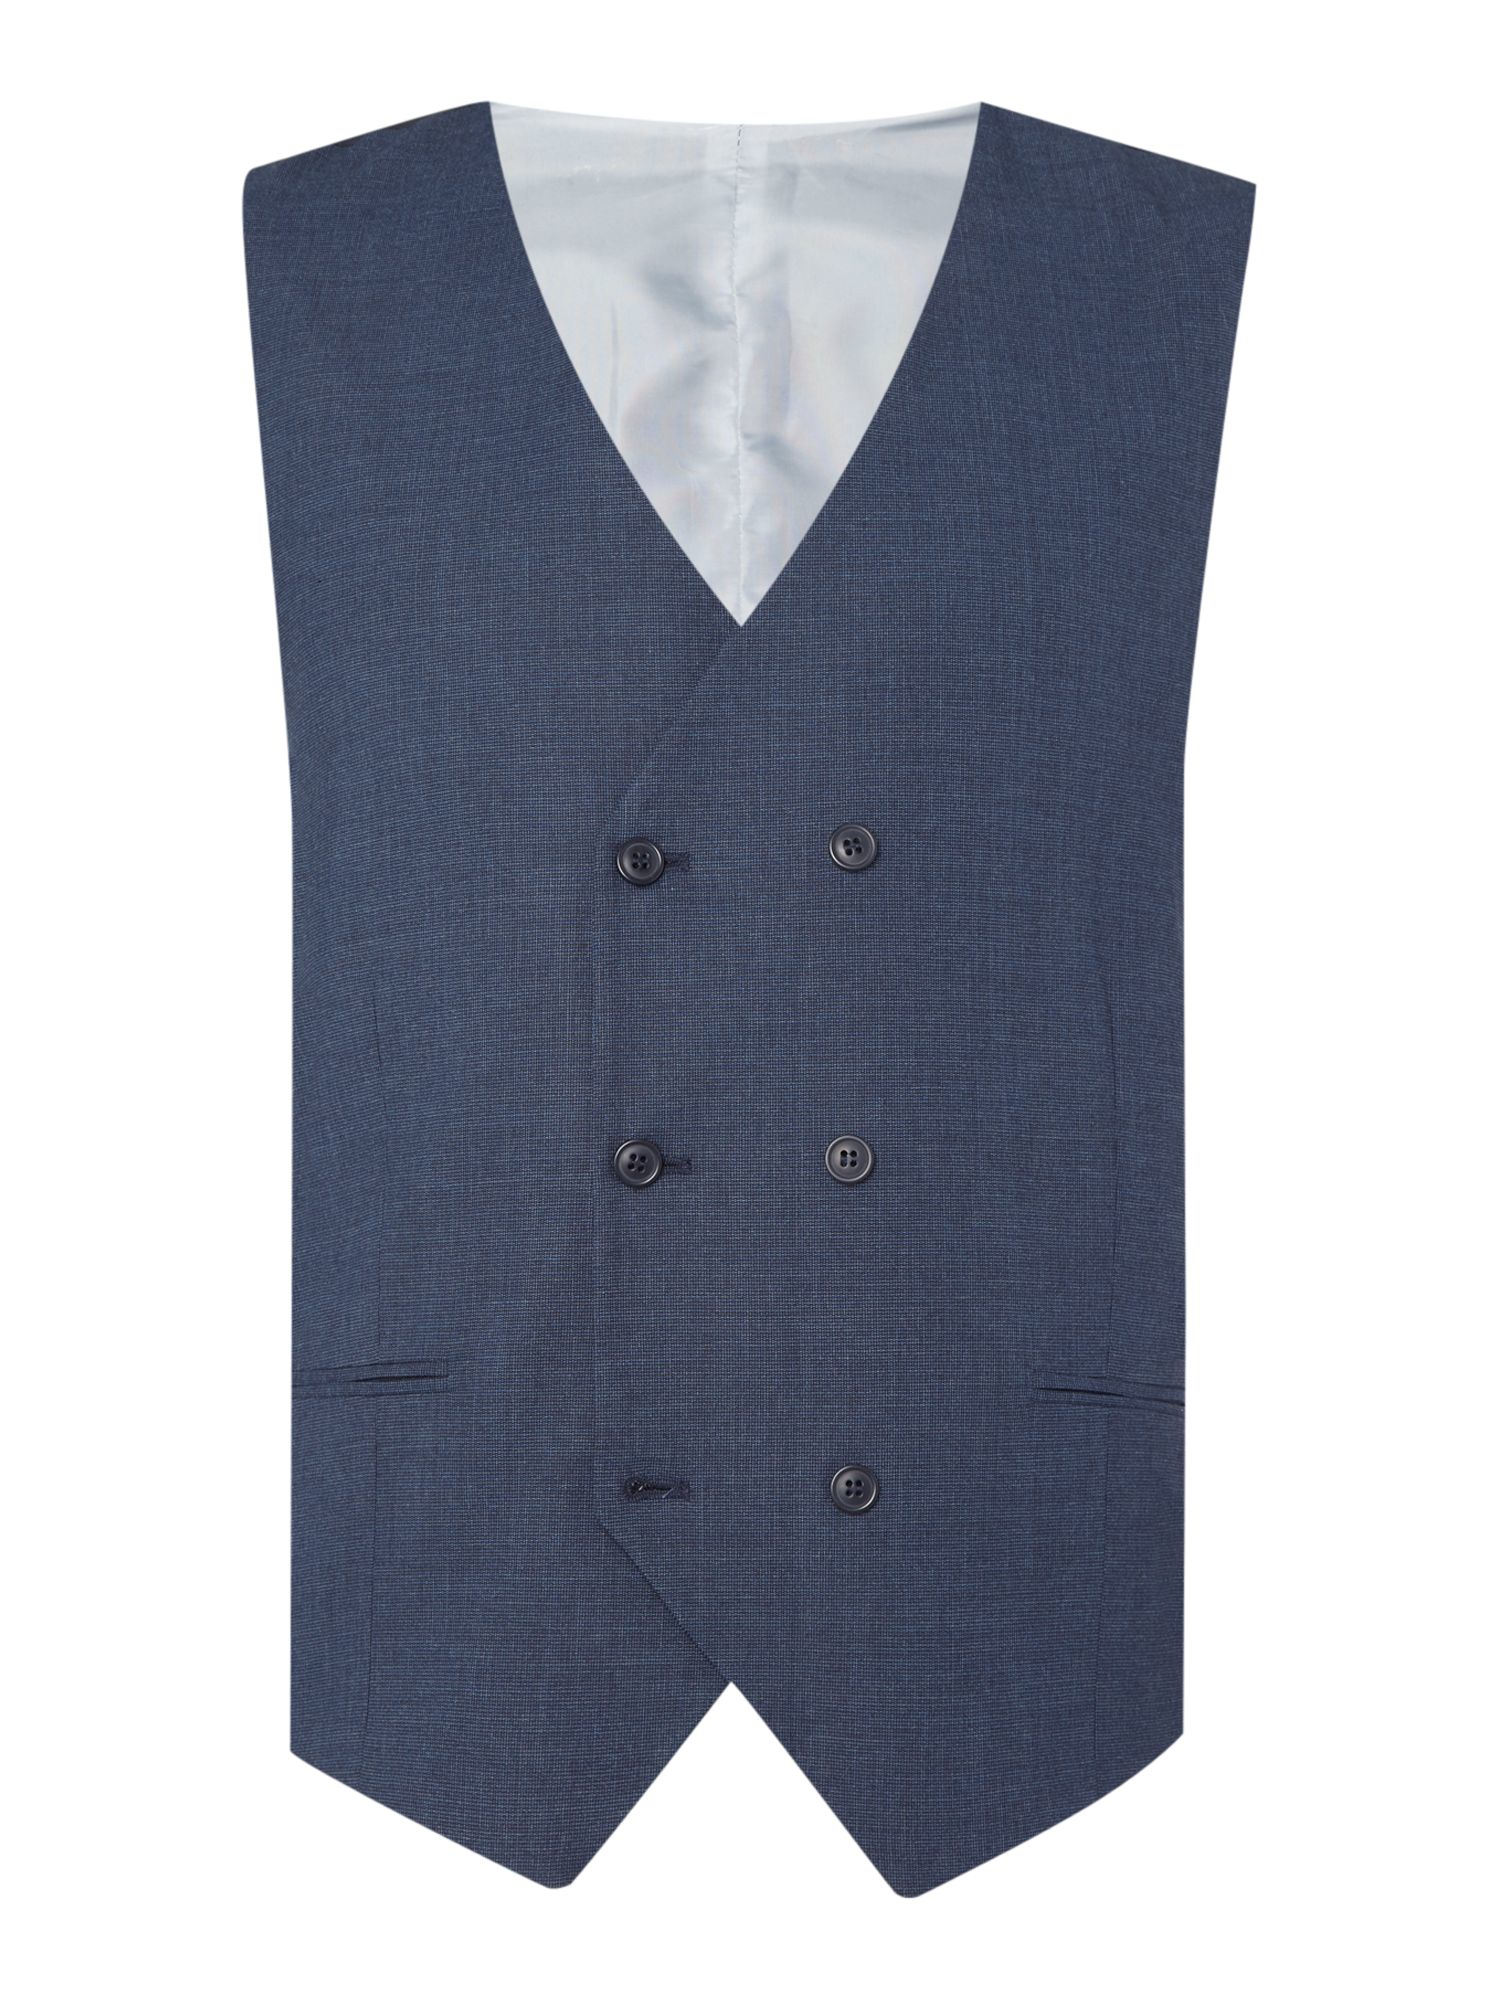 These vests are perfect for Wedding and Proms as well as uniform vests for career Get Huge Savings· Huge Tuxedo Selection· Huge Selection· Money Back Guarantee.